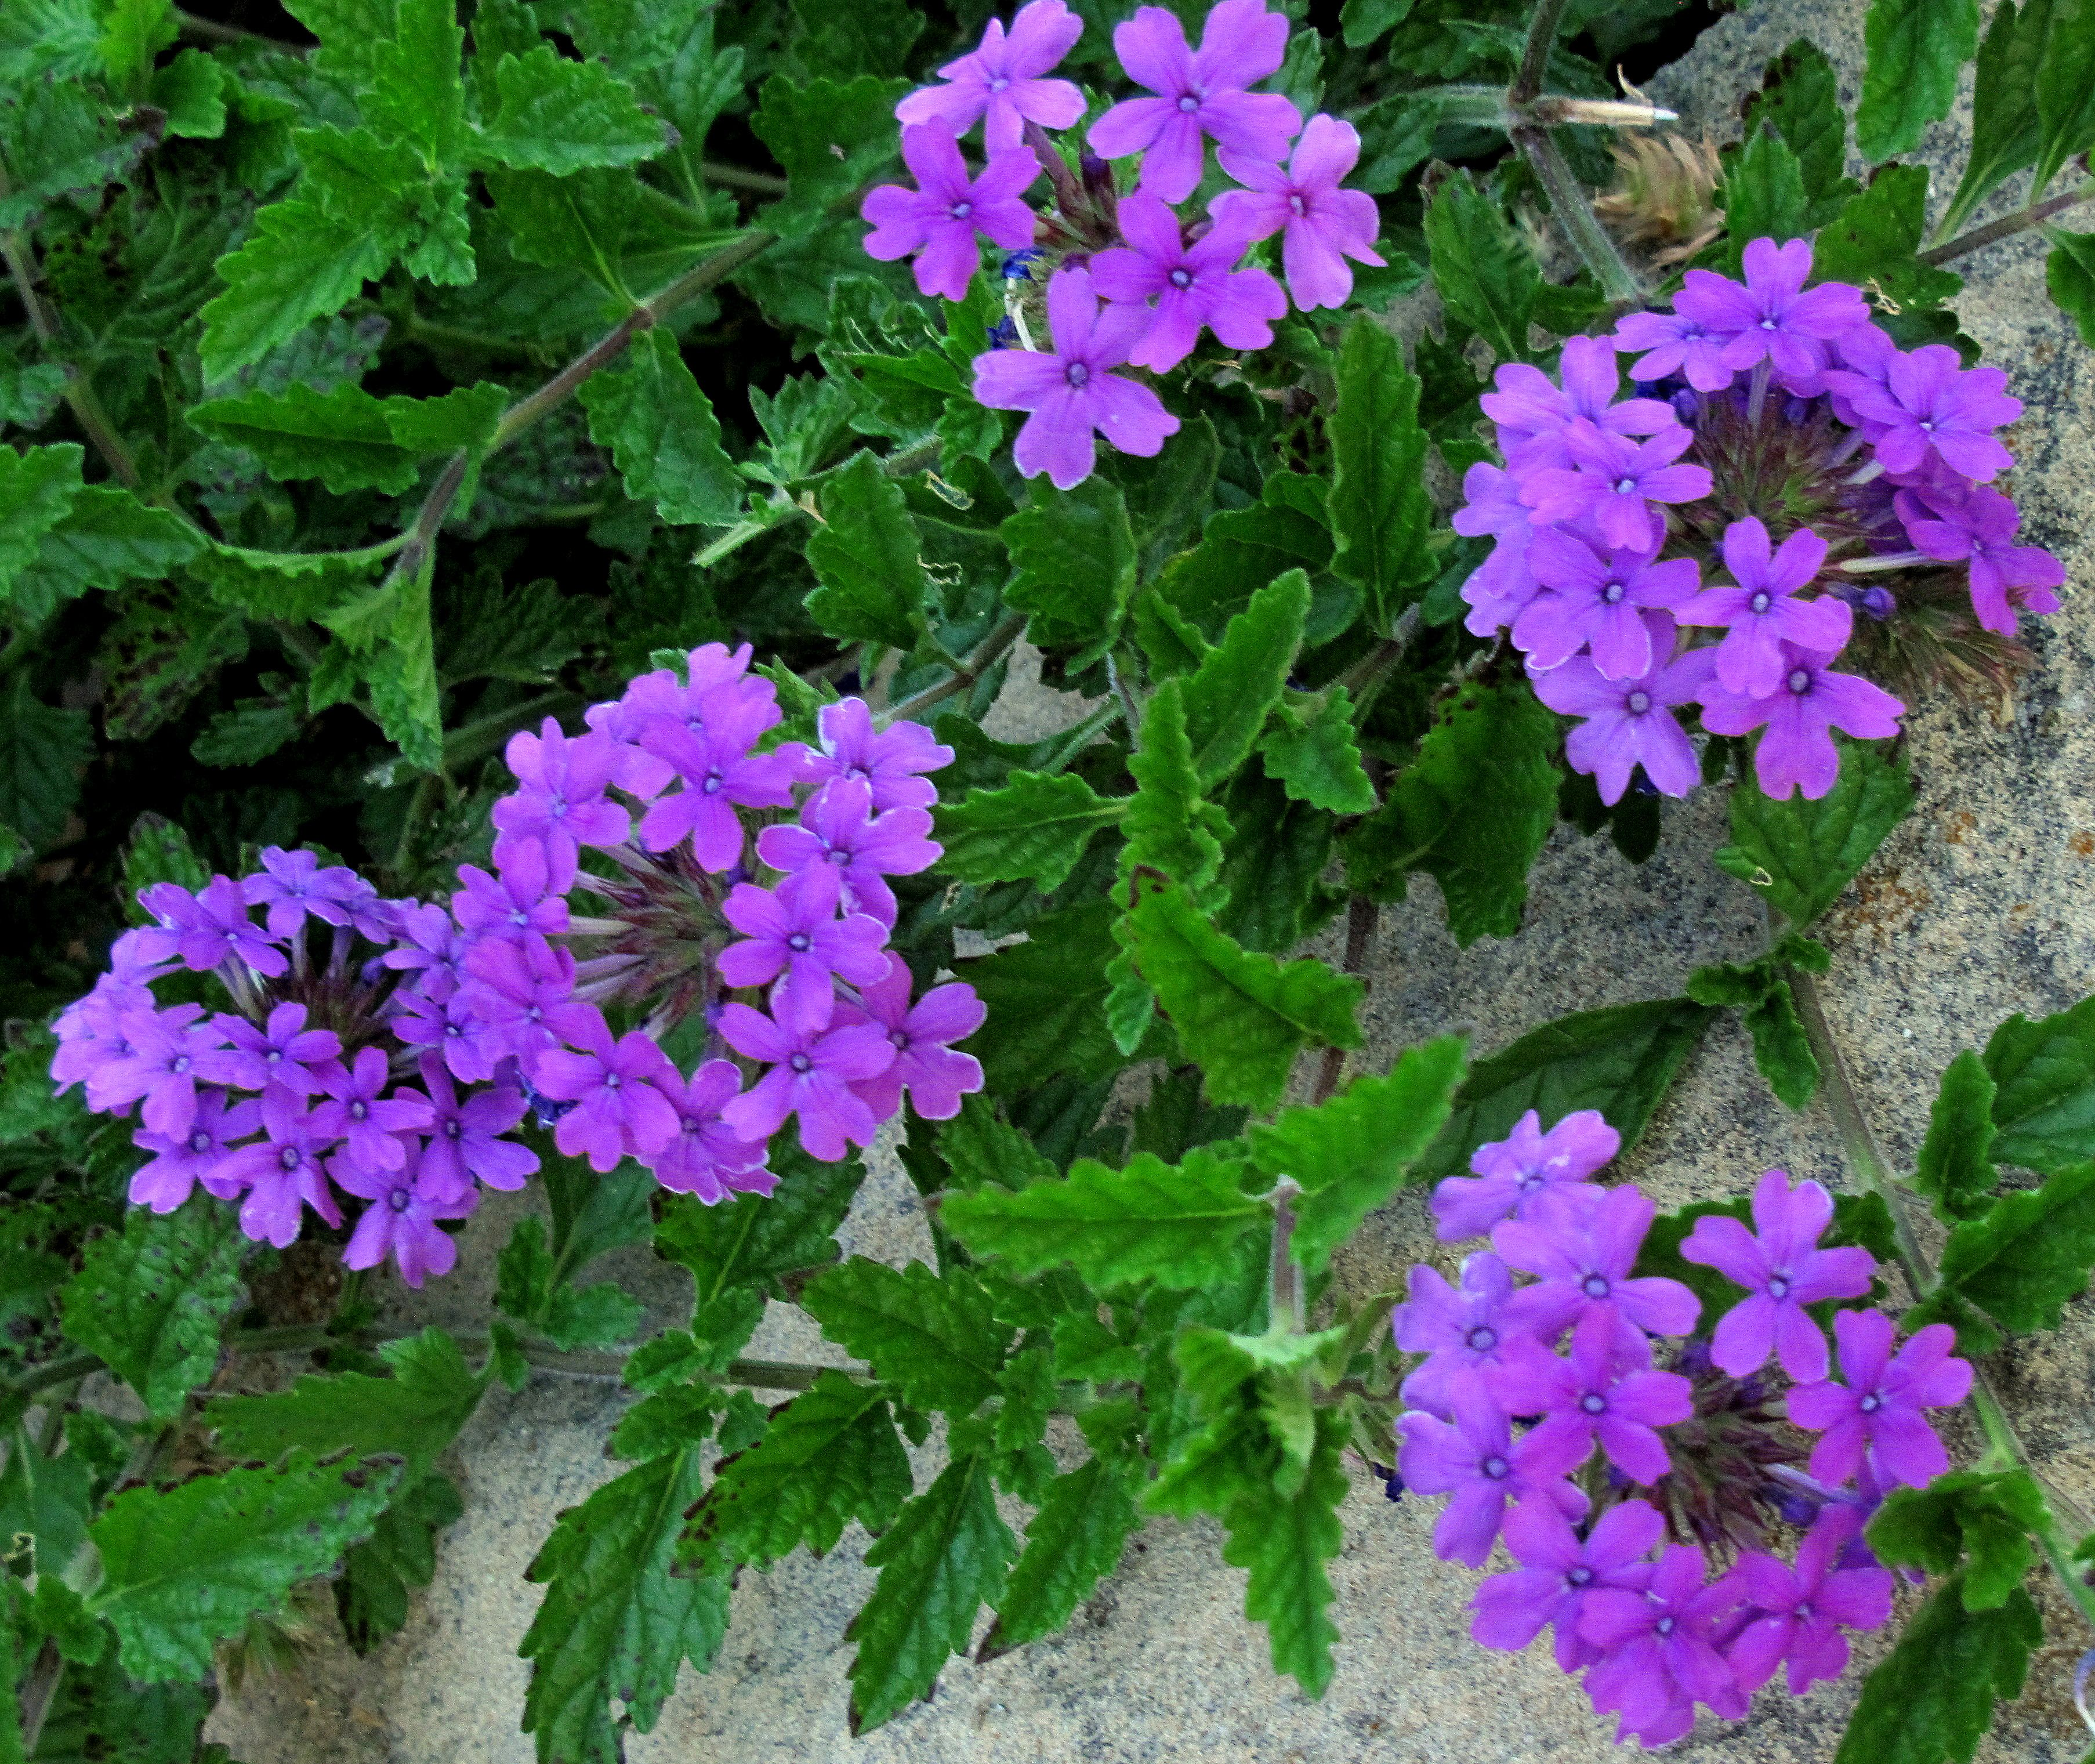 Verbena homestead purple easy to grow thrives in heat and drought tolerant secret garden - Heat tolerant plants keeping gardens alive ...